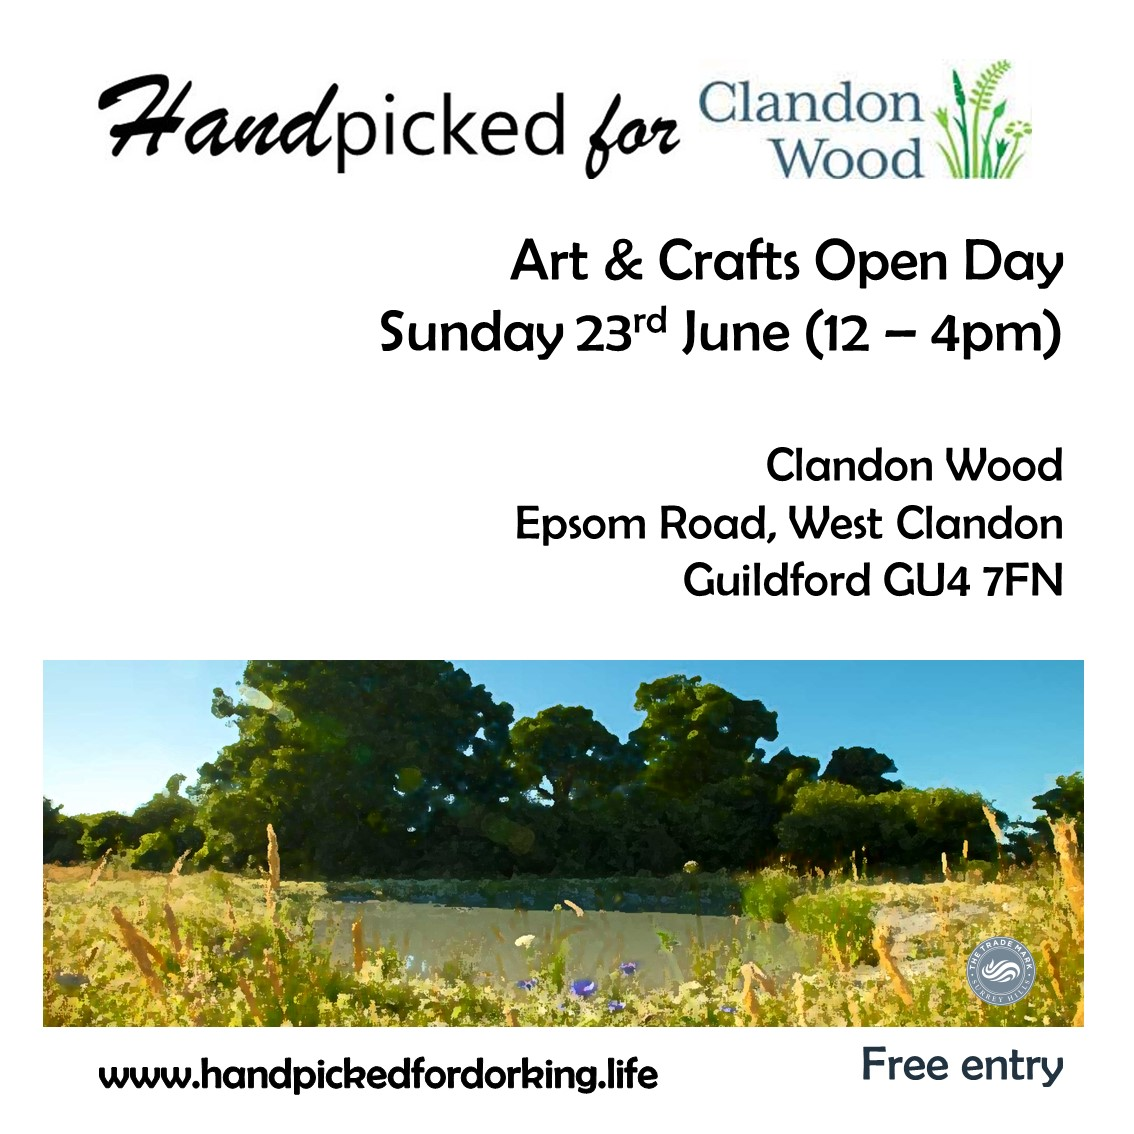 Exhibitor HandPICKED for Clandon ART AND CRAFTS DAY and FLYER.jpg